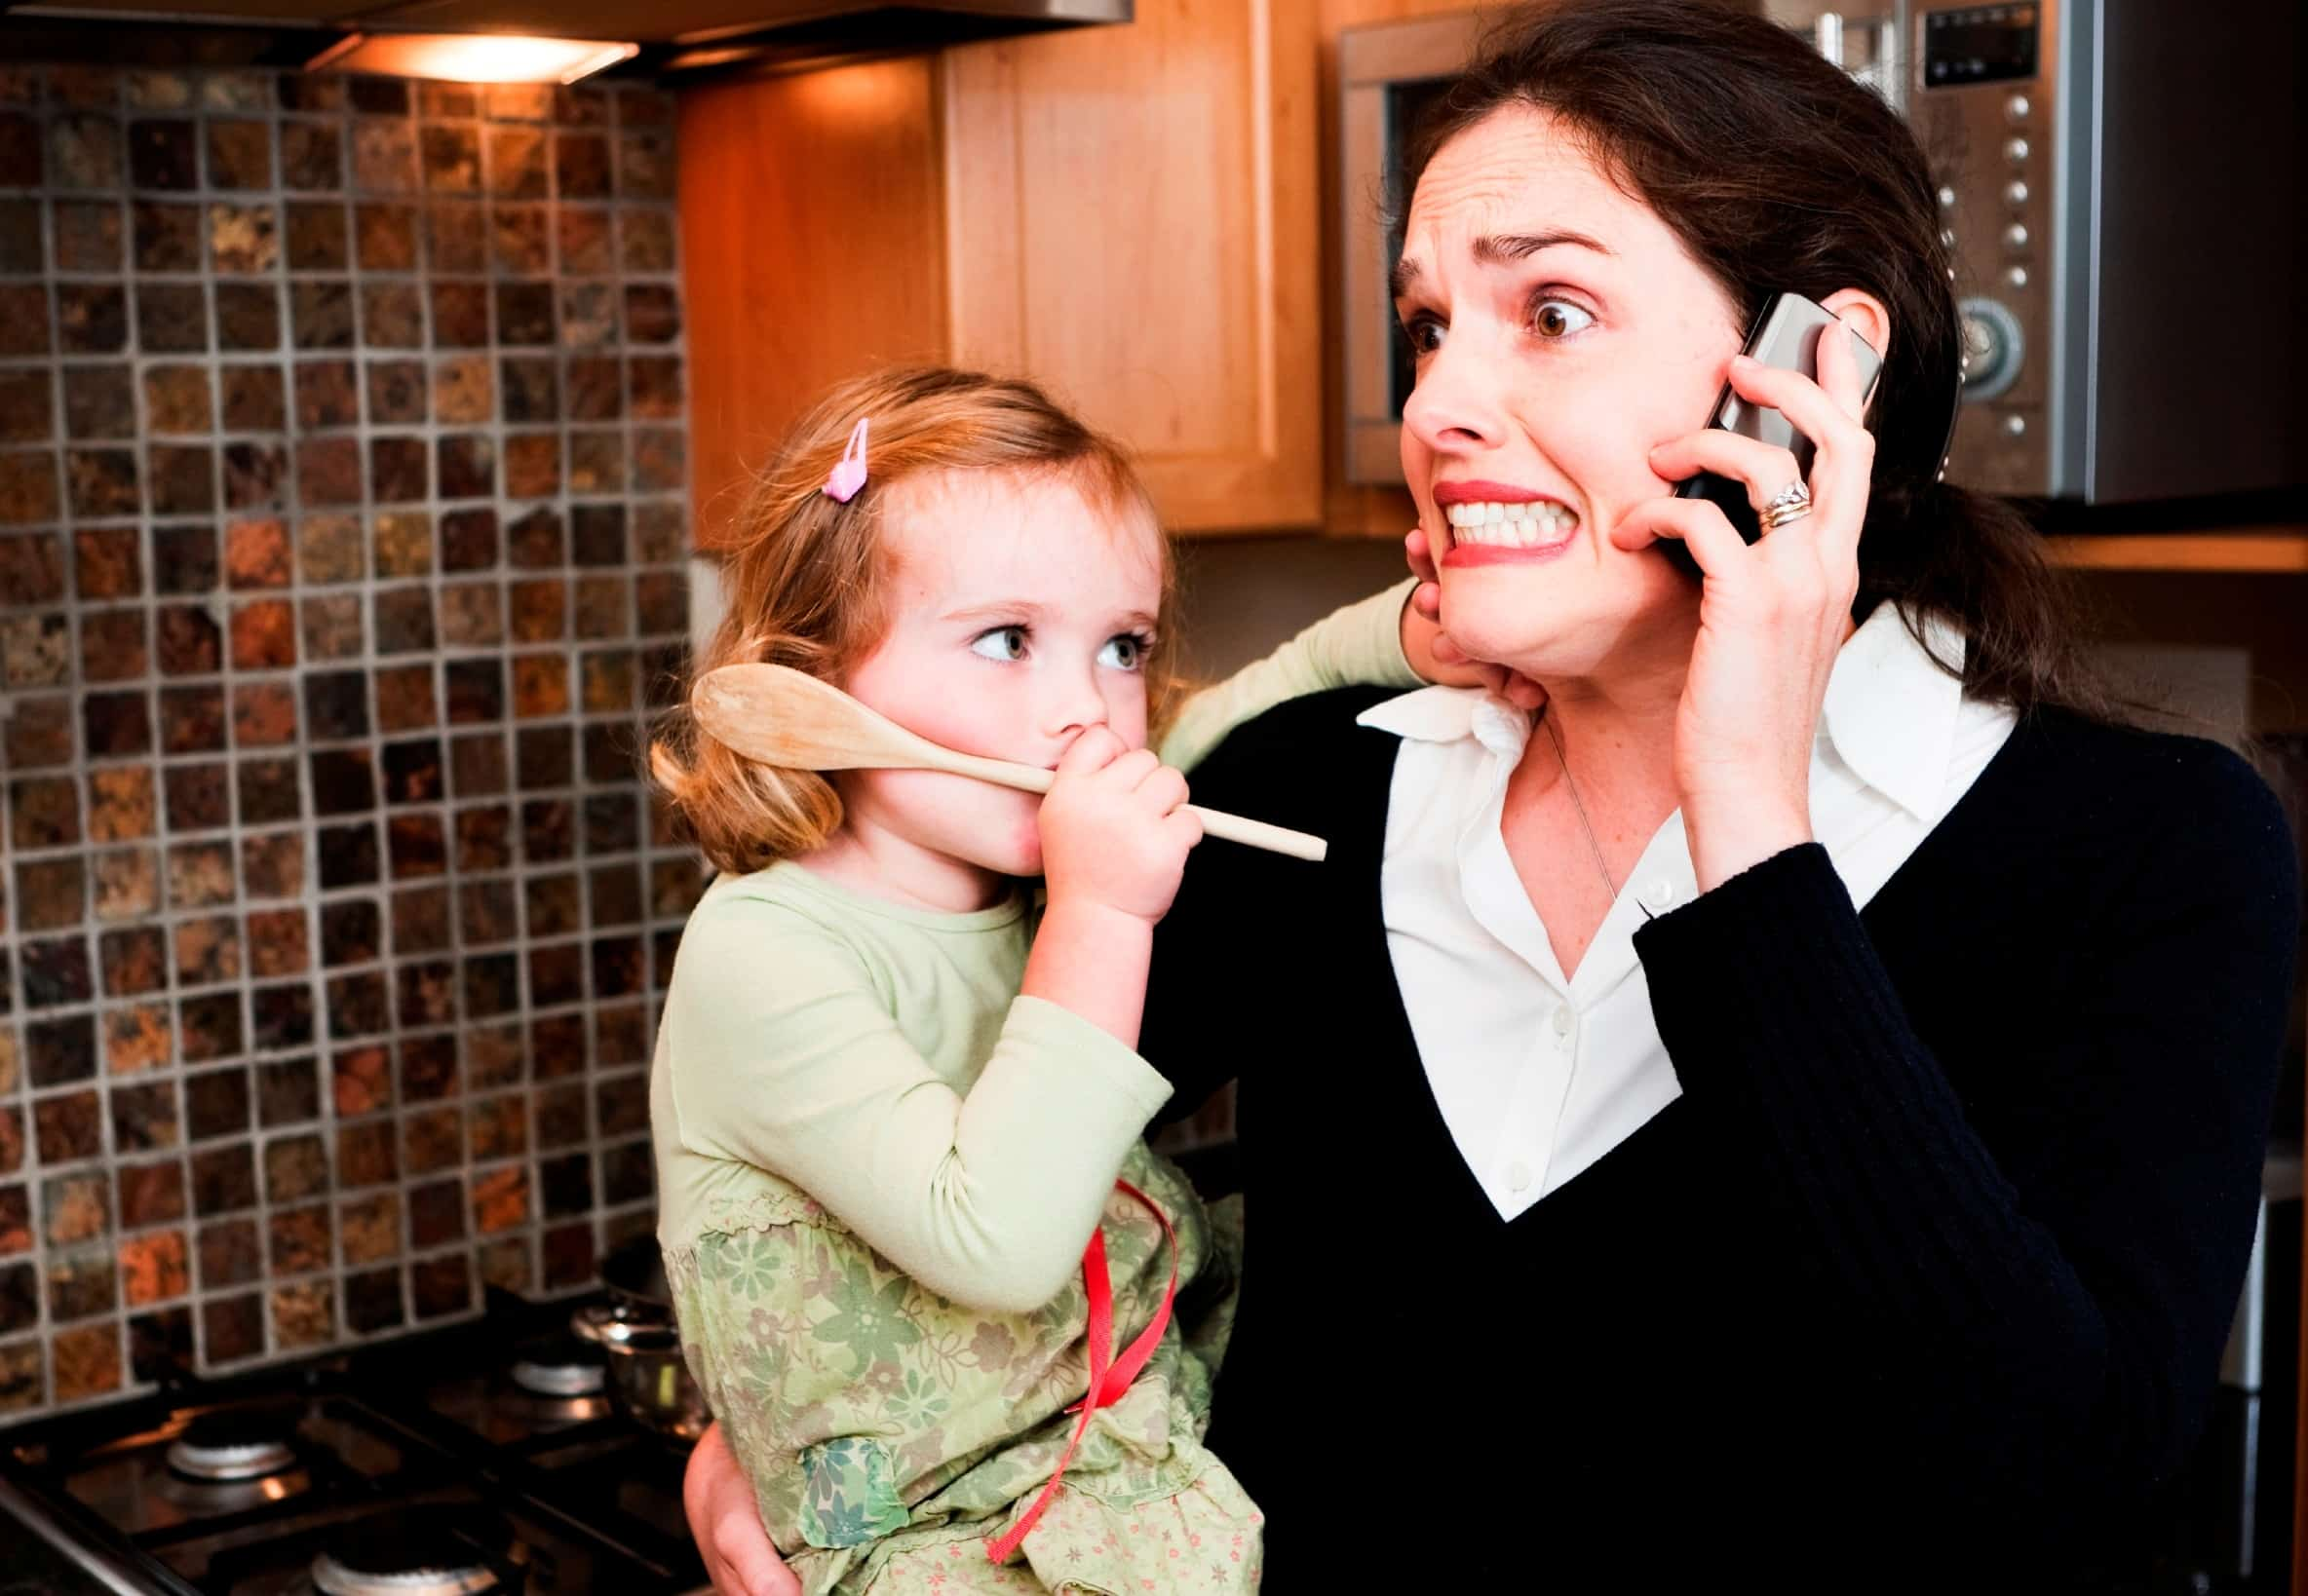 woman_mom_kid_kitchen_cropped.jpg